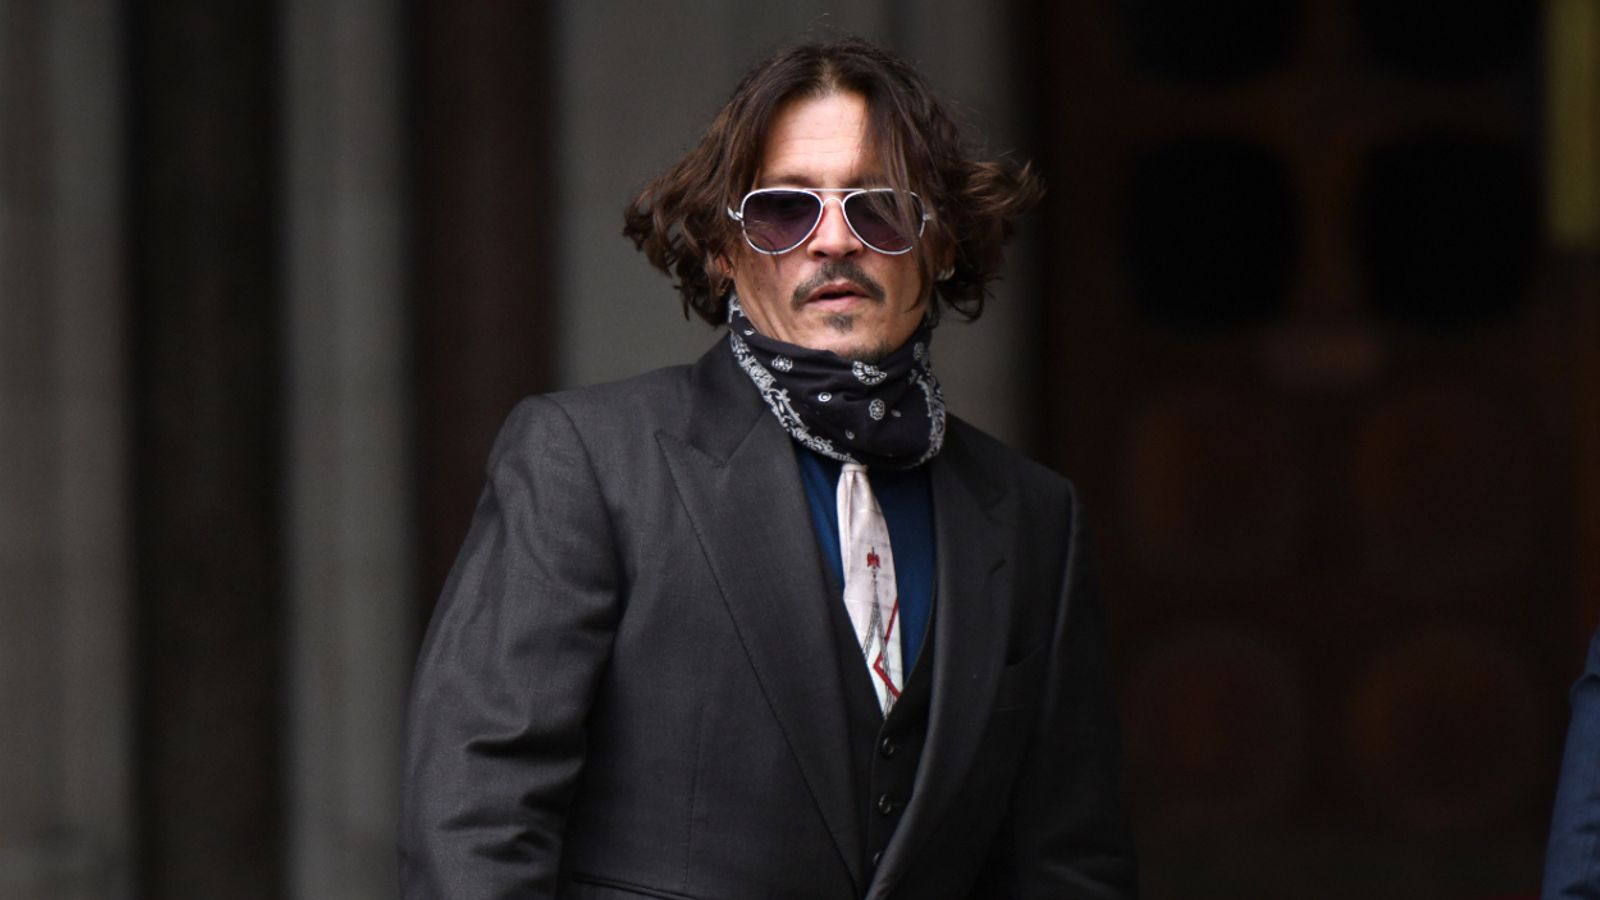 Johnny Depp libel trial: Audio released of 'Hollywood star groaning on private plane' - Sky News